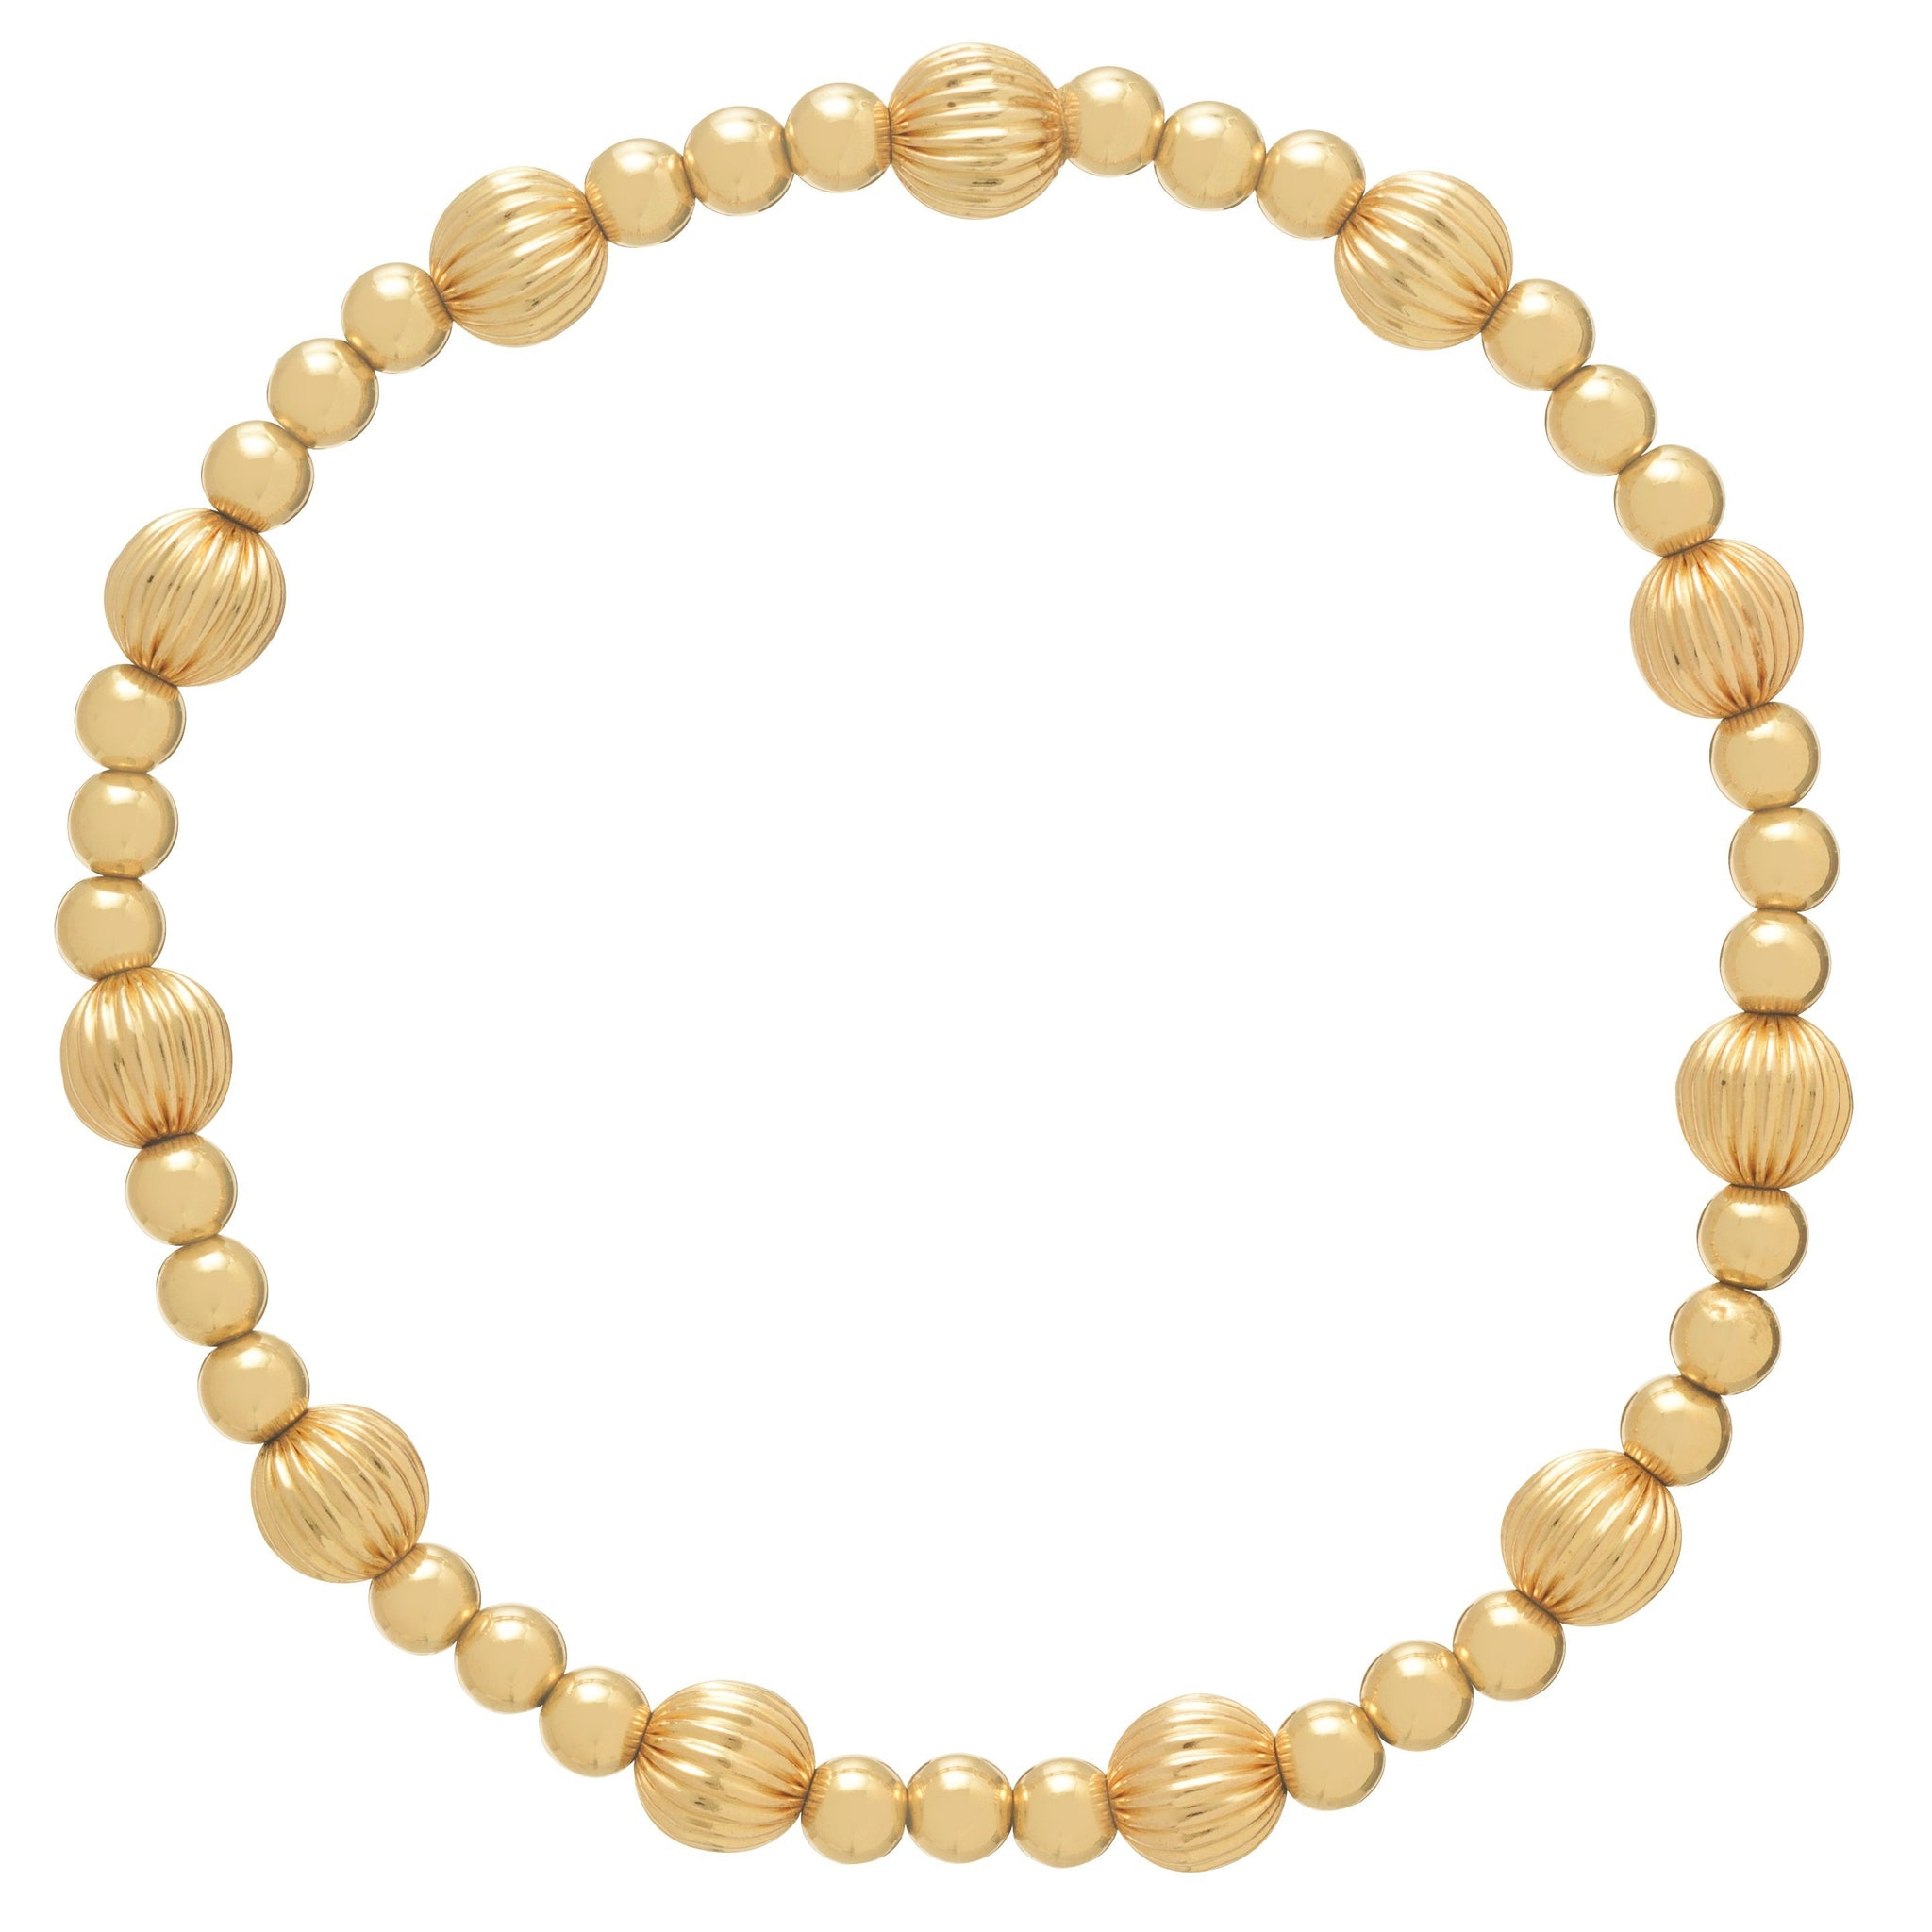 enewton Dignity Sincerity Pattern 6mm Bead Bracelet - Gold